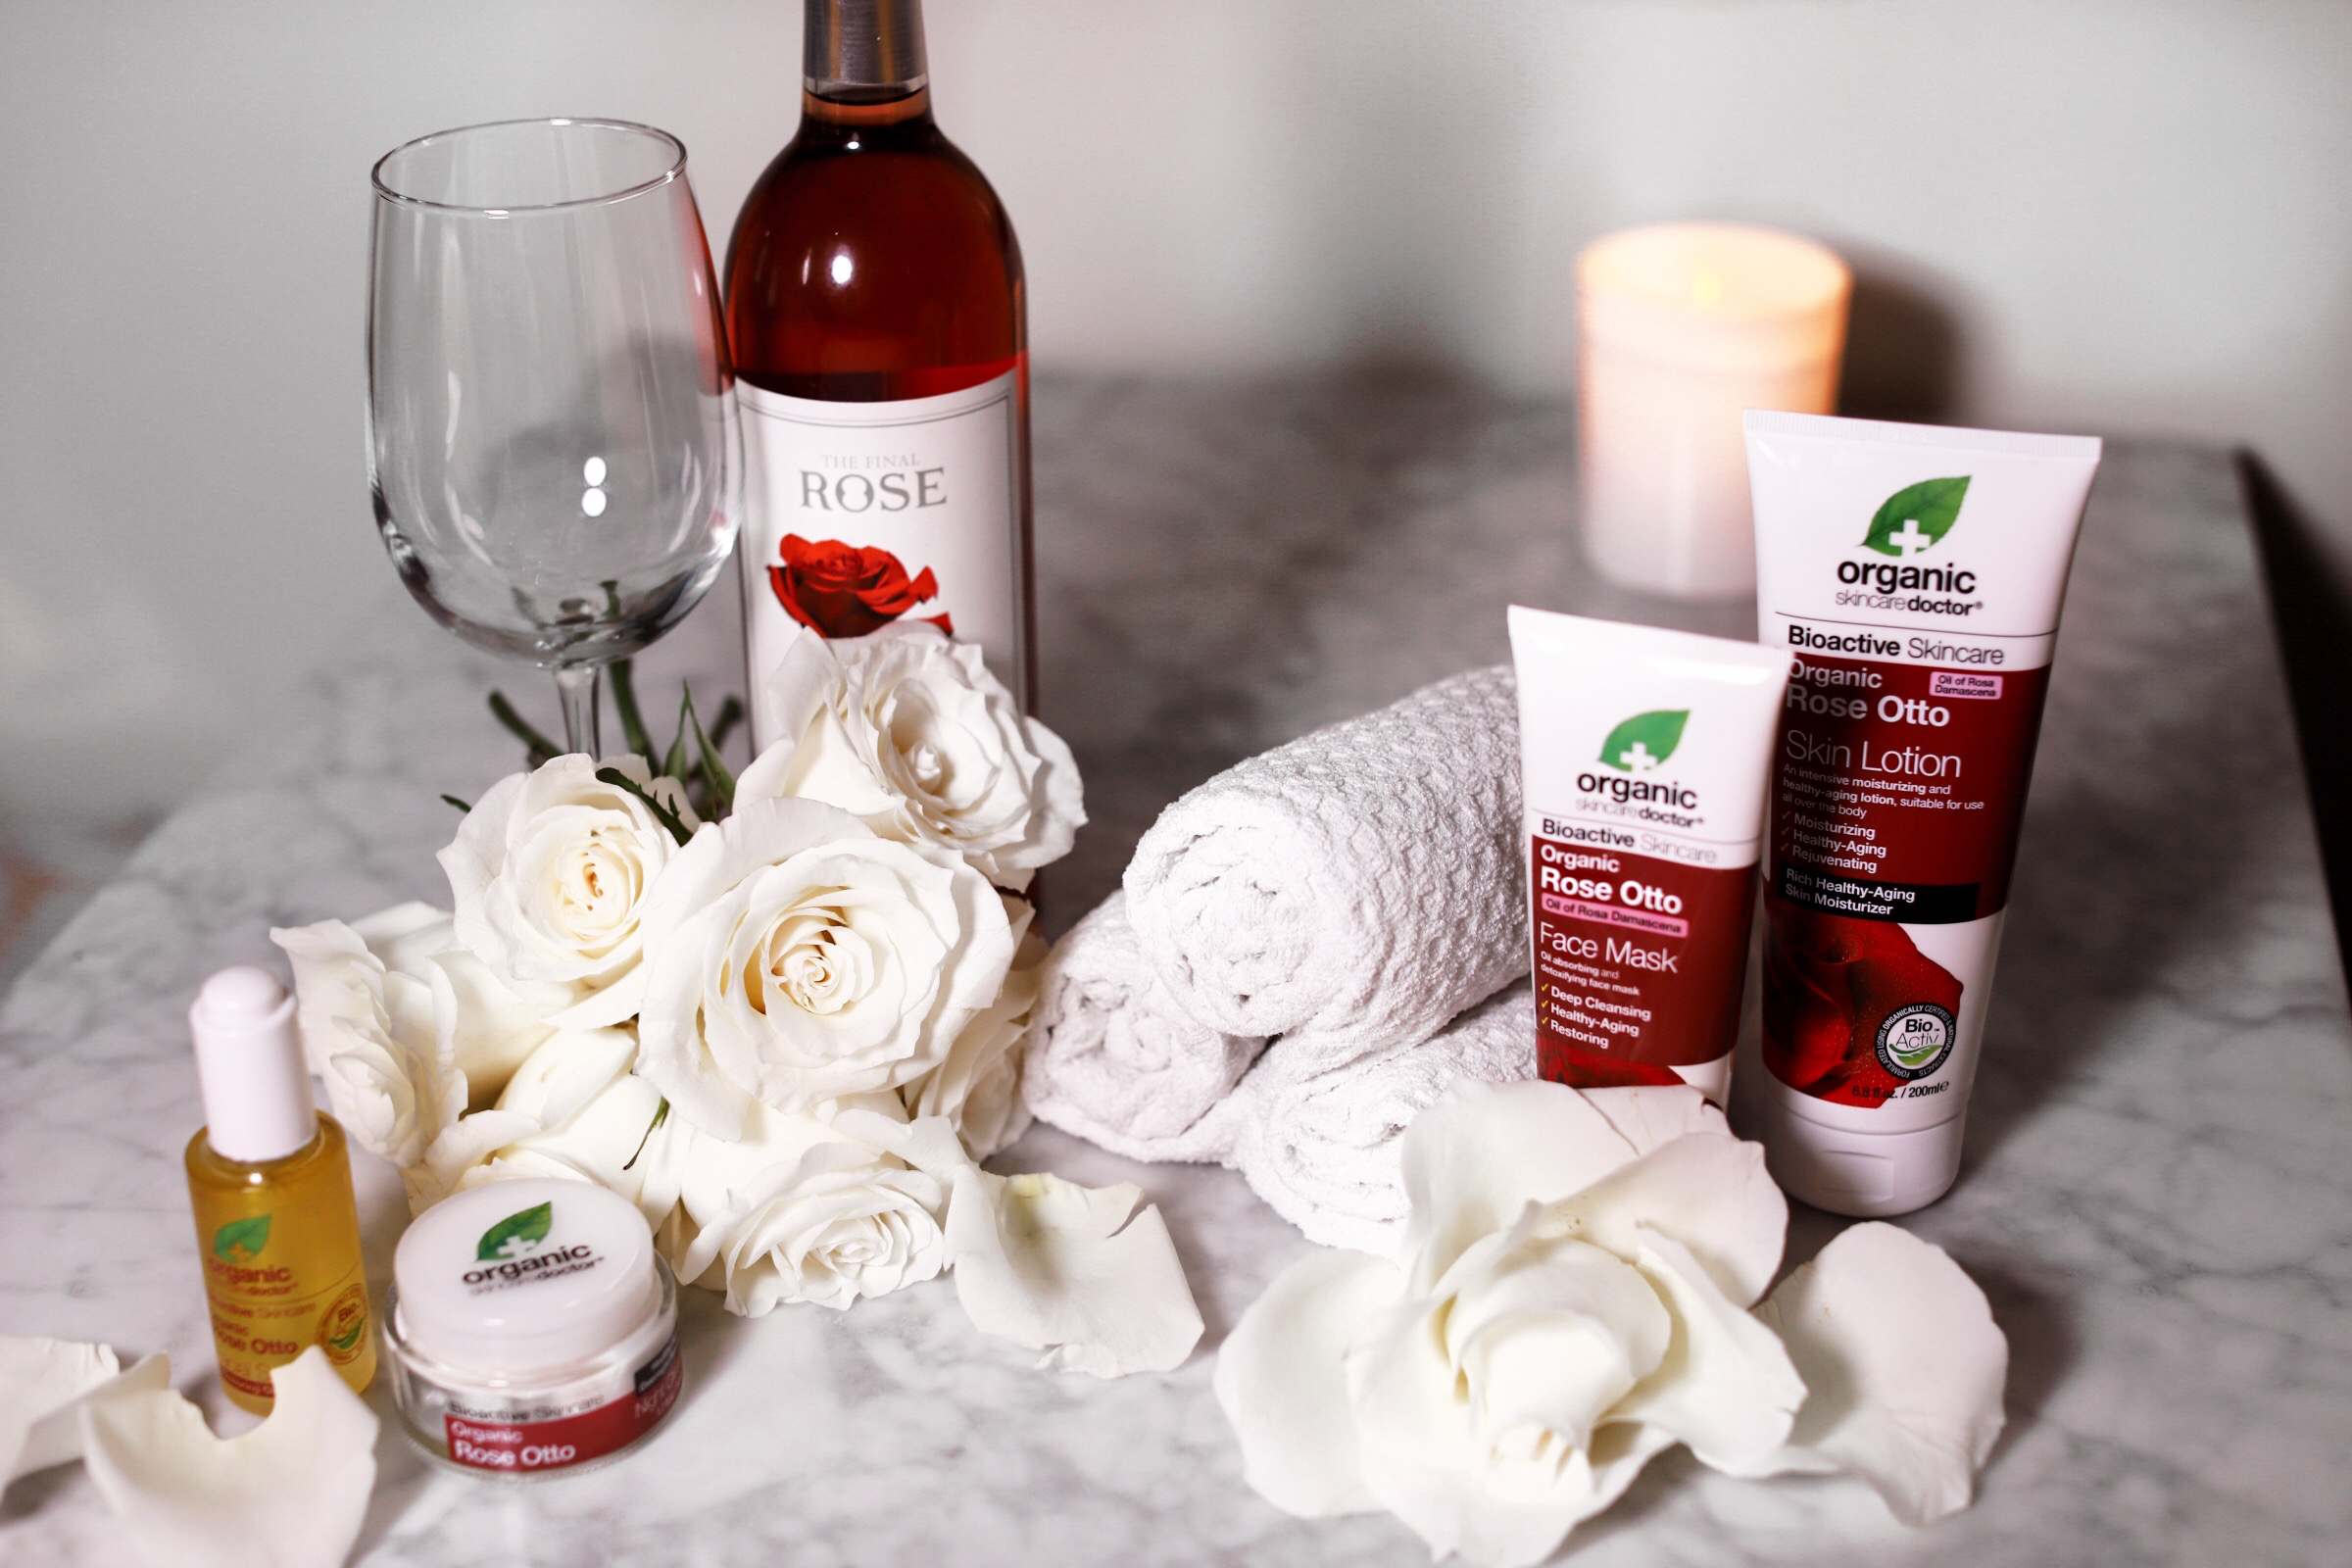 Bachelor Inspired Spa Night with Organic Doctor and Caila Quinn